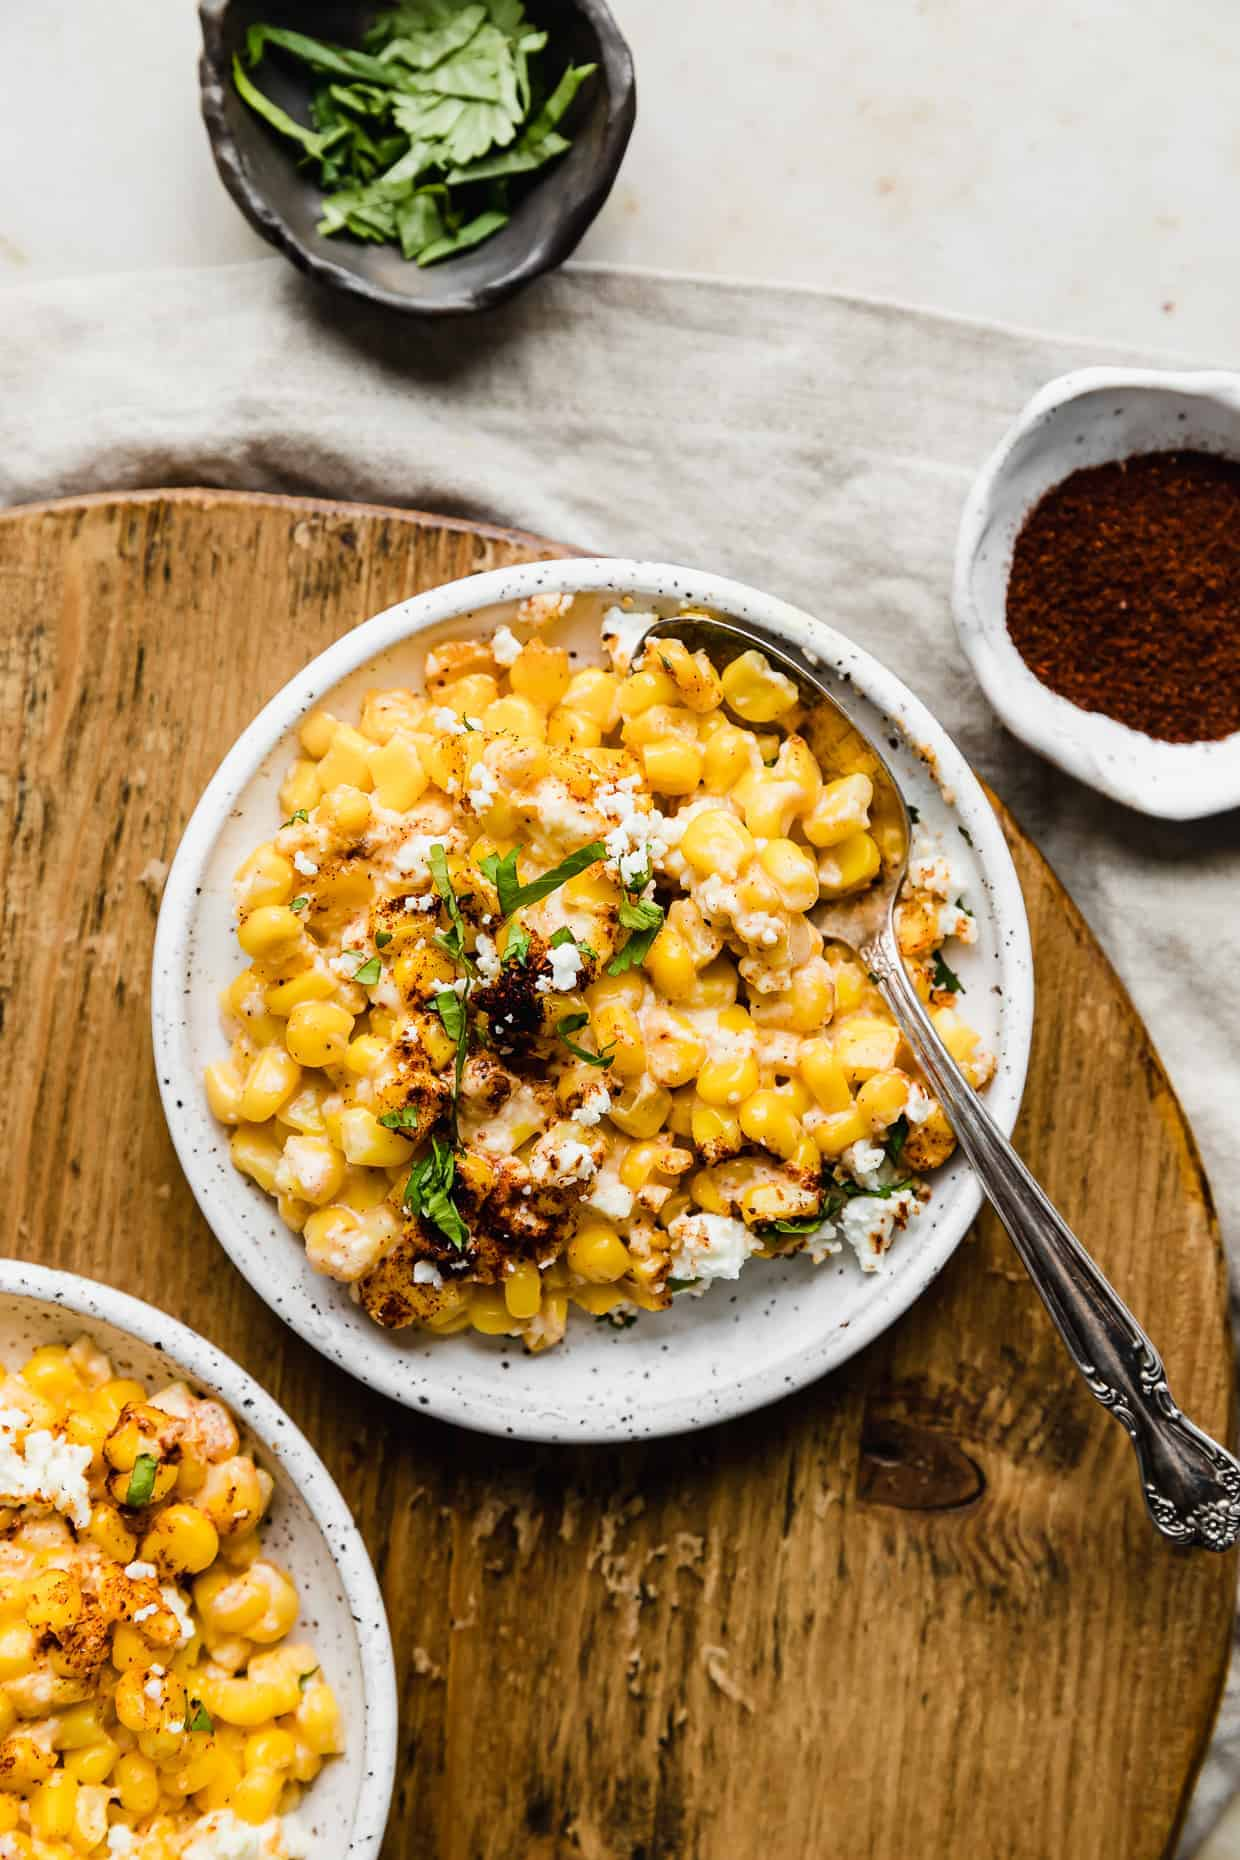 Mexican Street Corn kernels garnished with cilantro and chili powder on a white plate against a wooden cutting board.